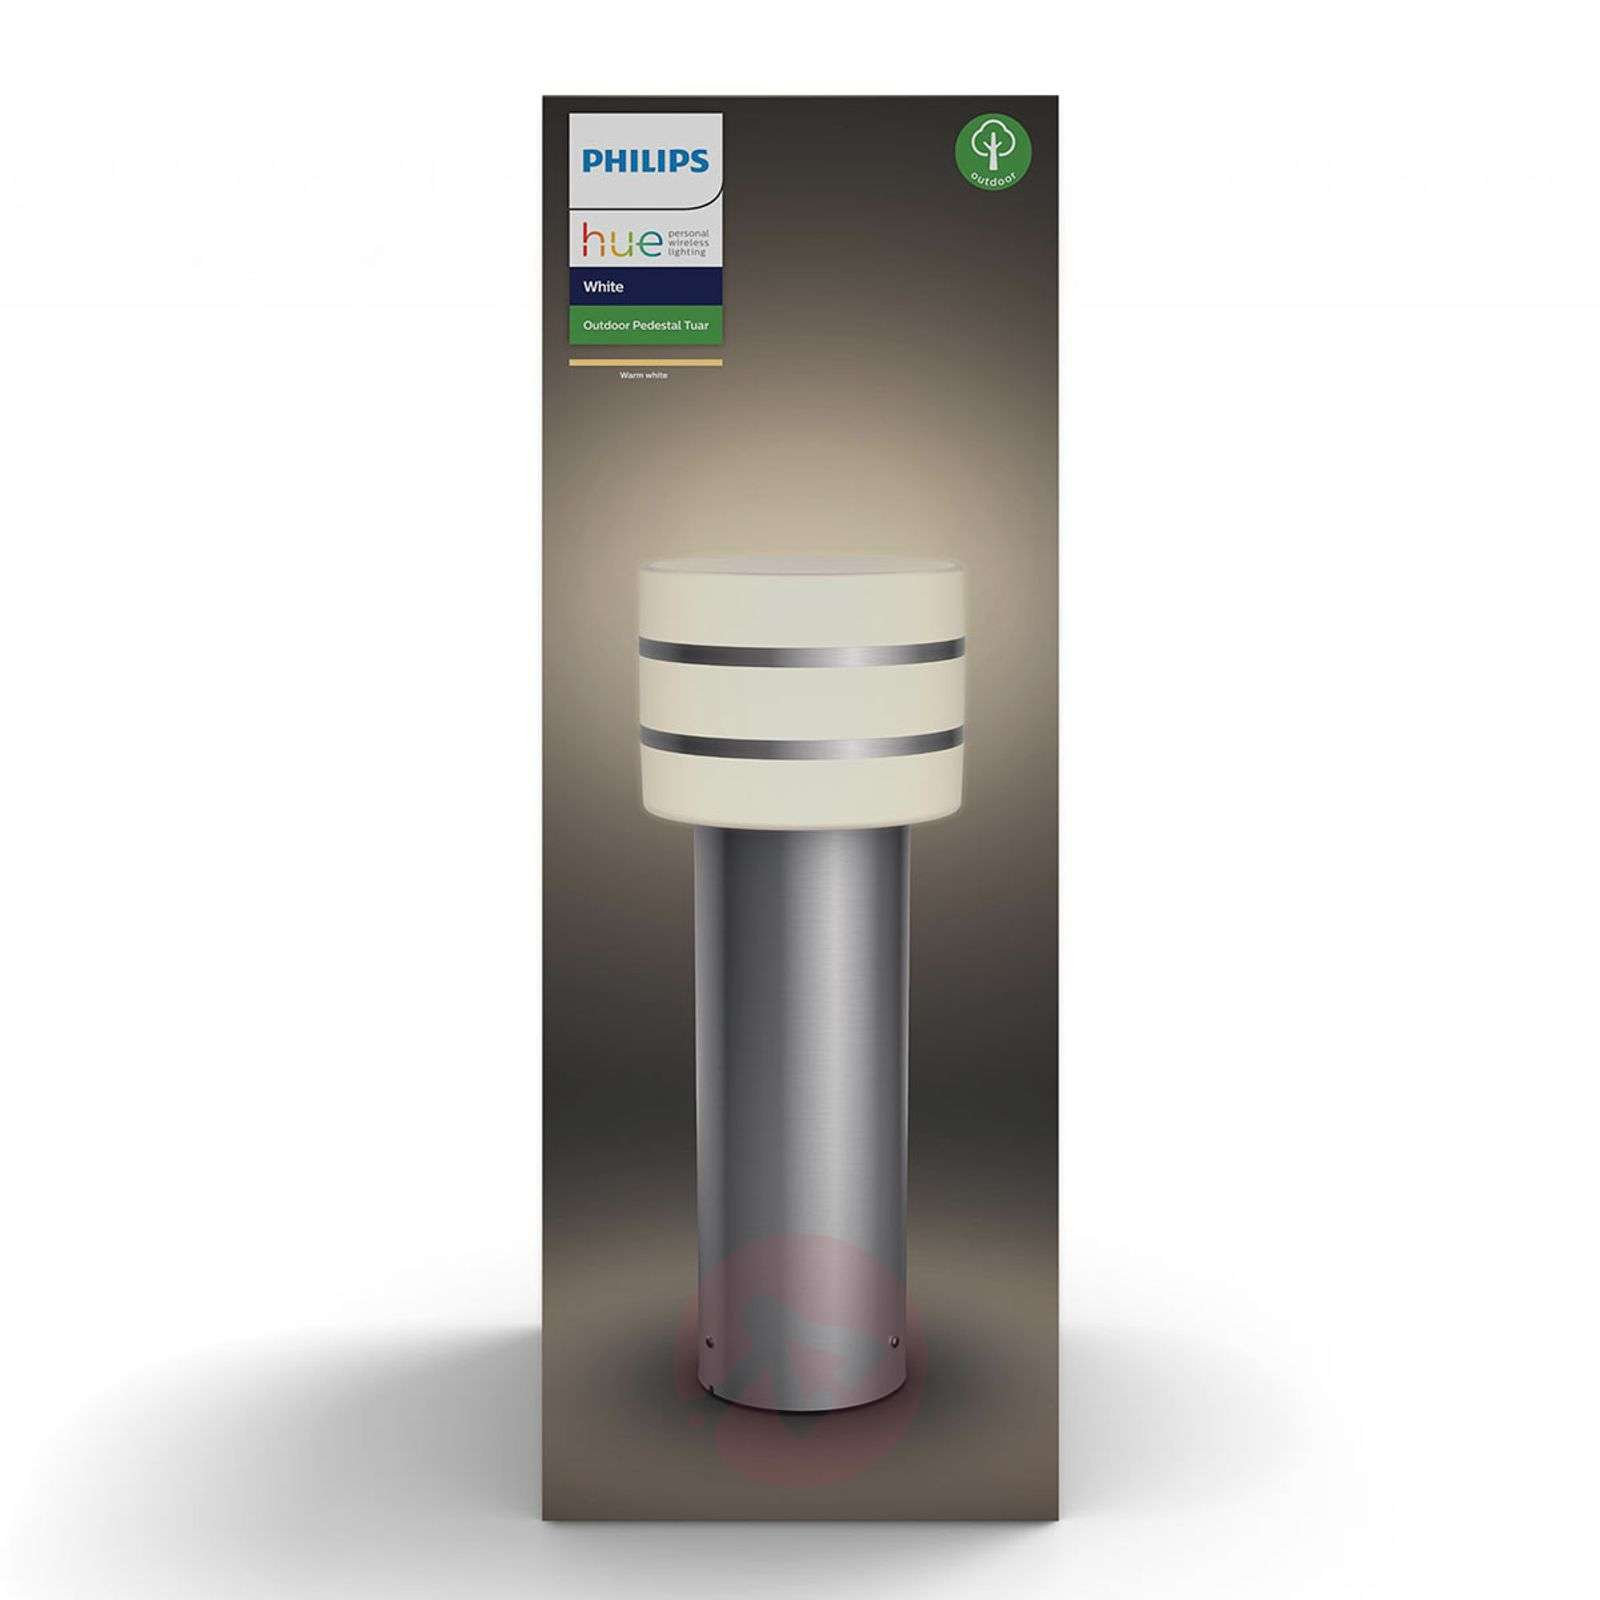 Philips Hue lampione a LED Tuar, dimmerabile-7534052-01